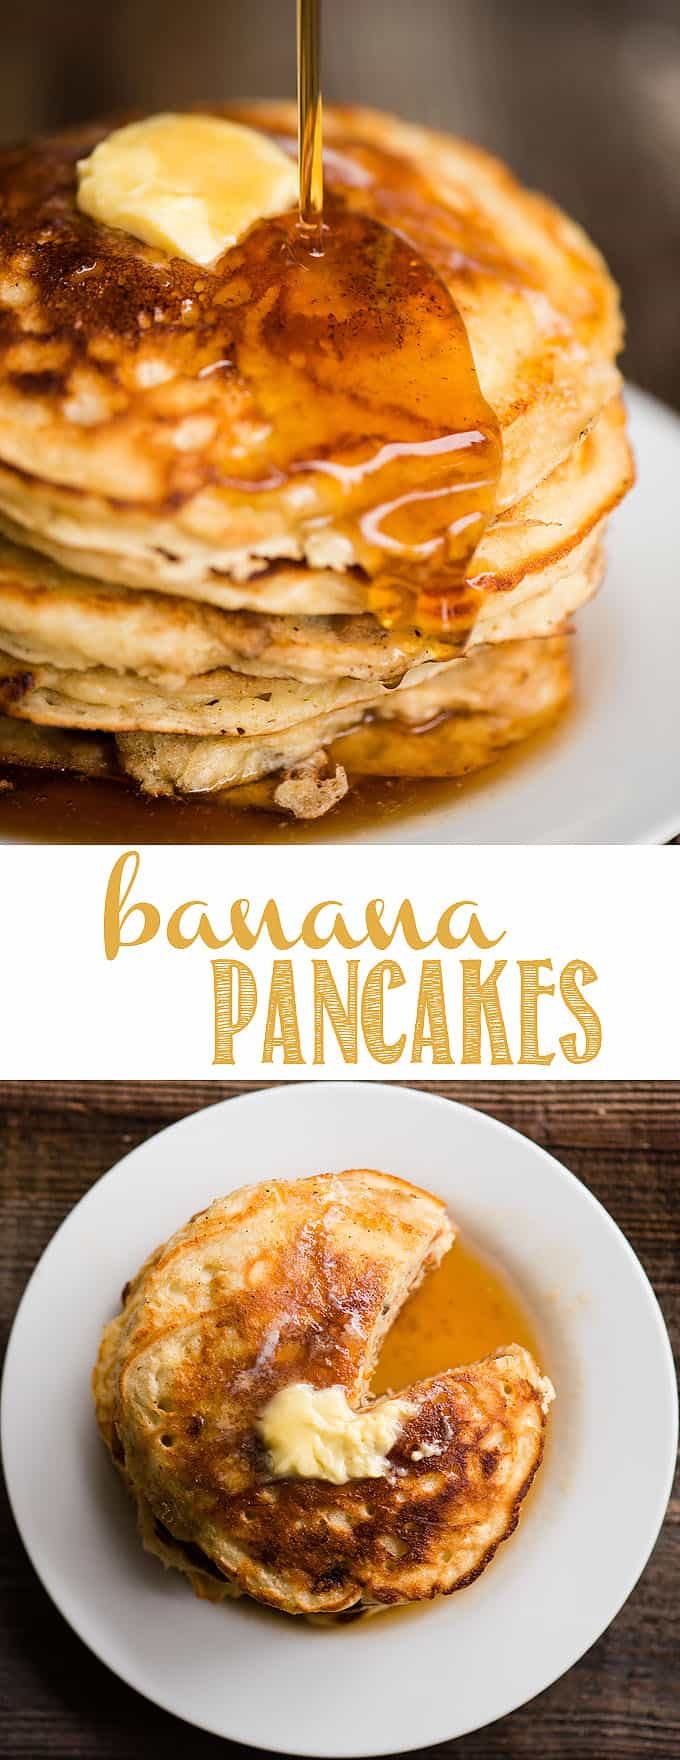 Banana Pancakes made from scratch with mashed ripe banana, walnuts, and buttermilk are what family breakfasts are all about! These fluffy homemade pancakes are perfect with a pad of butter and warm pure maple syrup. Don't bother using a mix when it's so easy to mix up a batch with ingredient you have on hand! #pancakes #banana #bananapancakes #banananut